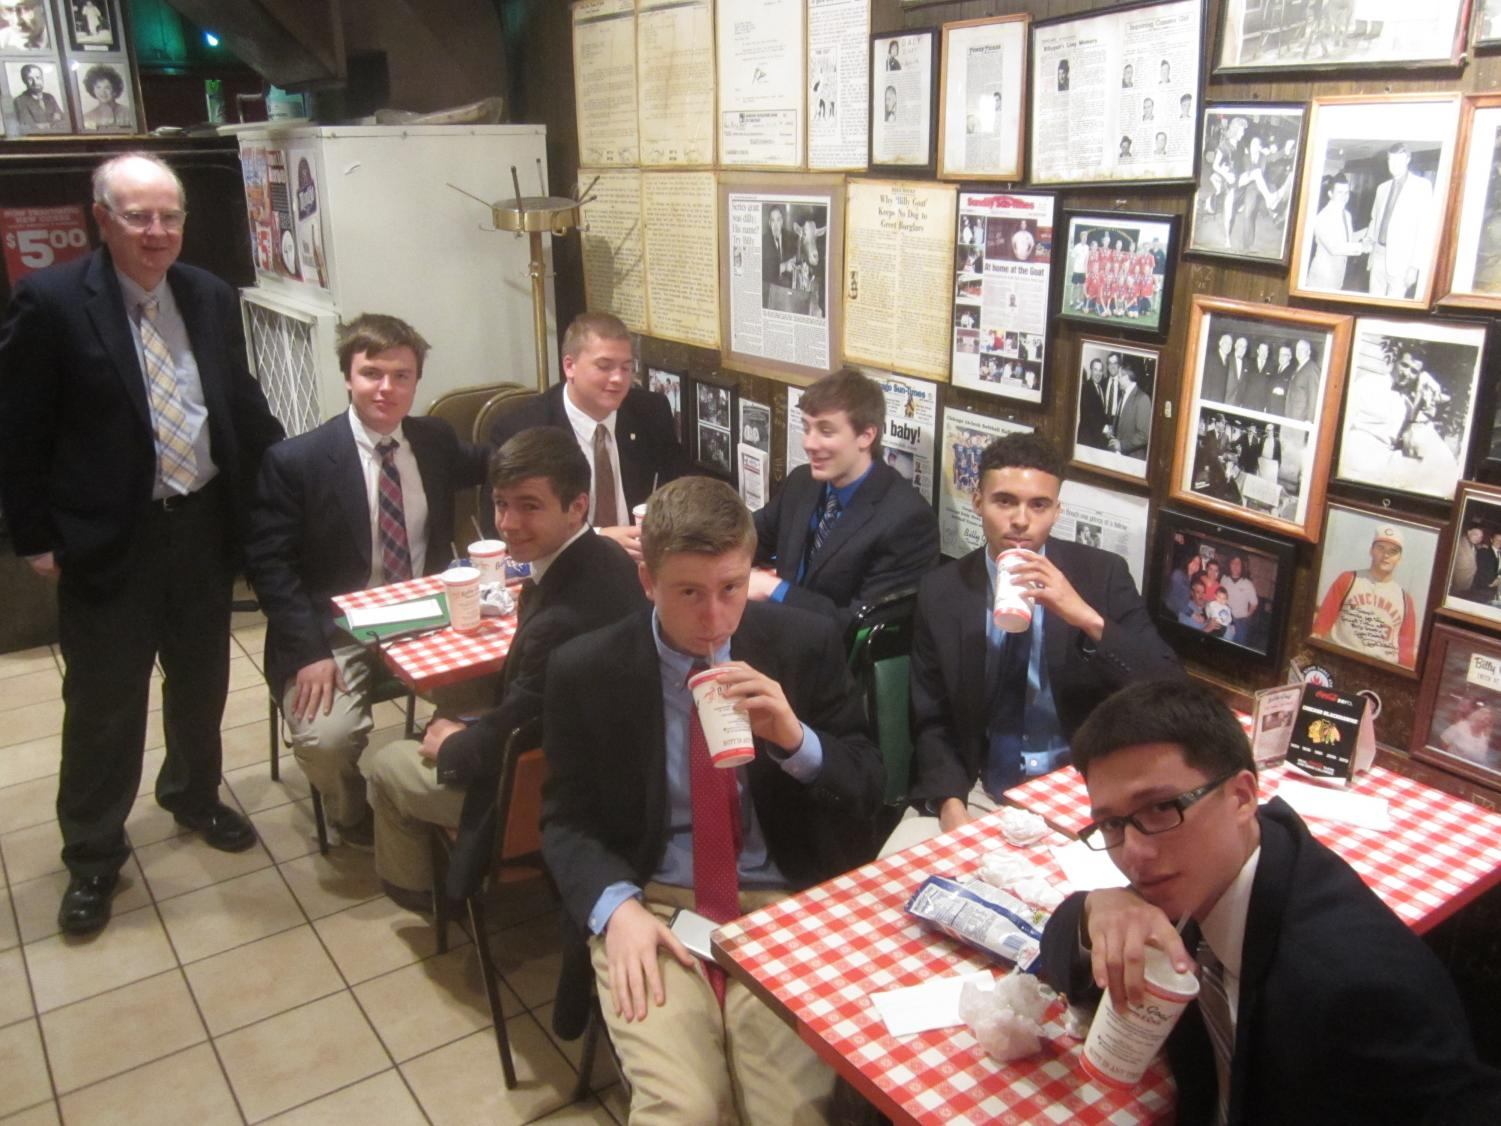 The Billy Goat Tavern was always on the tour when we visited the Tribune.